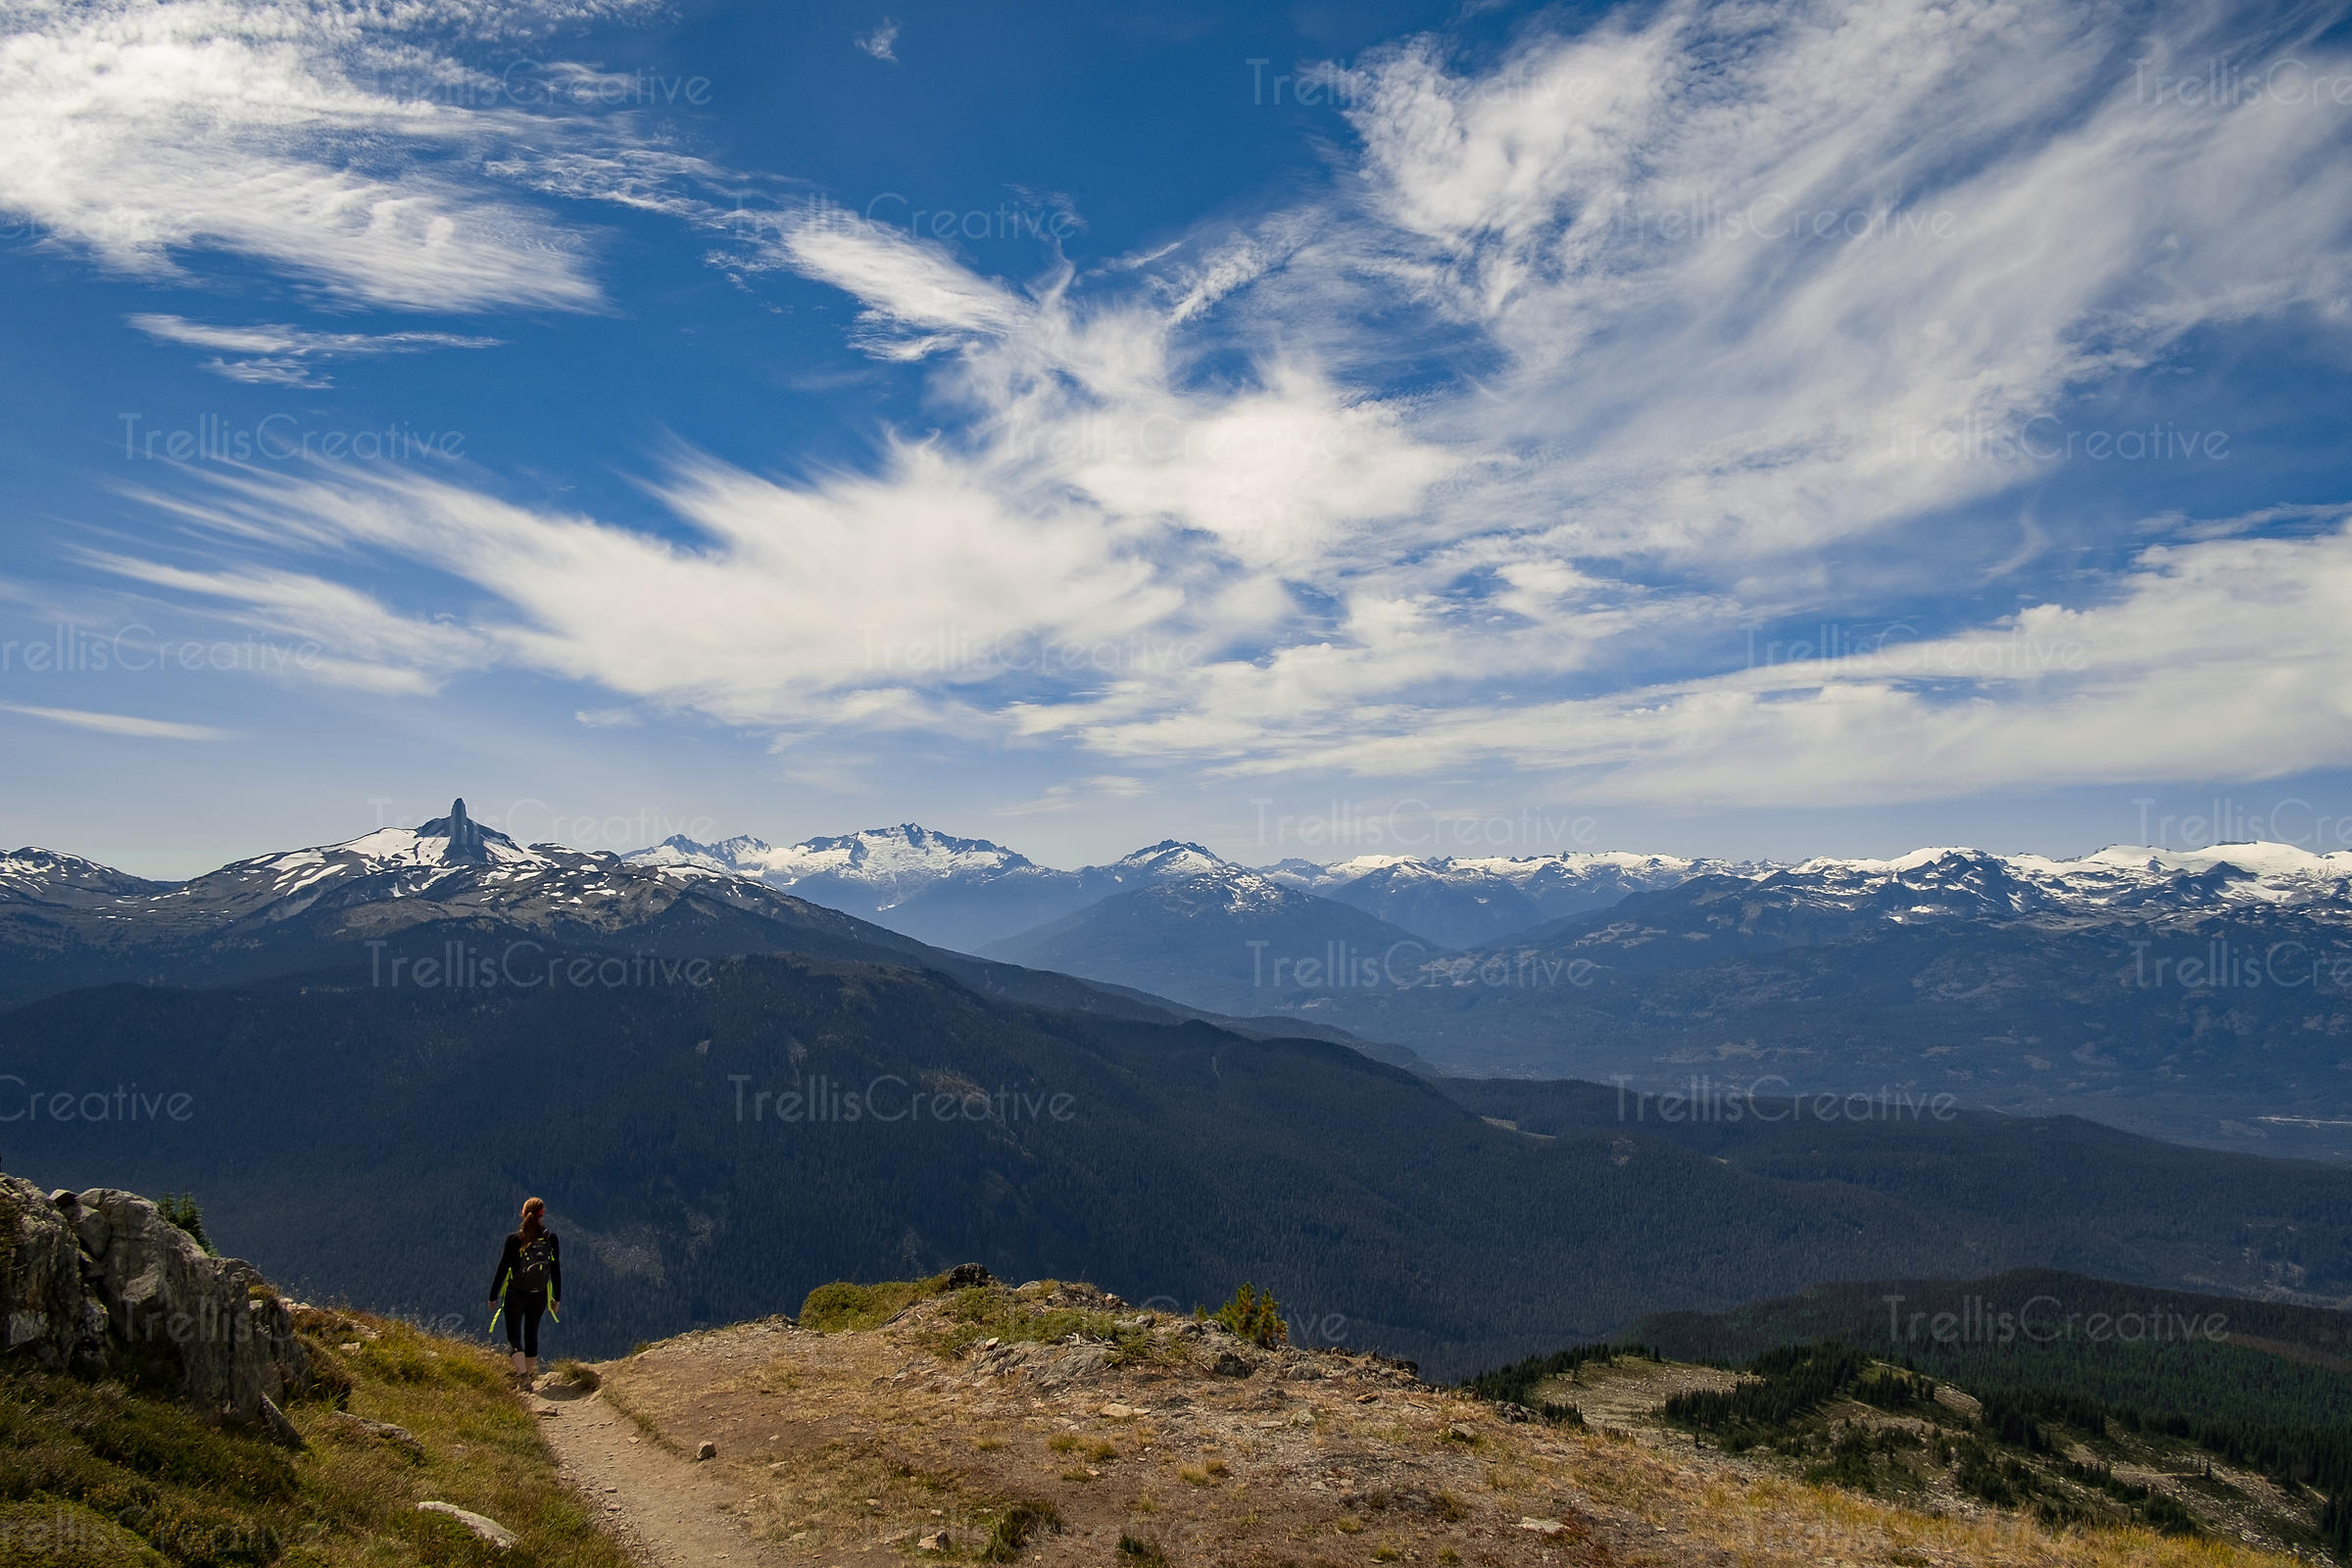 Female hiker at the top of a remote mountain trail, Blackcomb Mountain, Whistler, Canada.